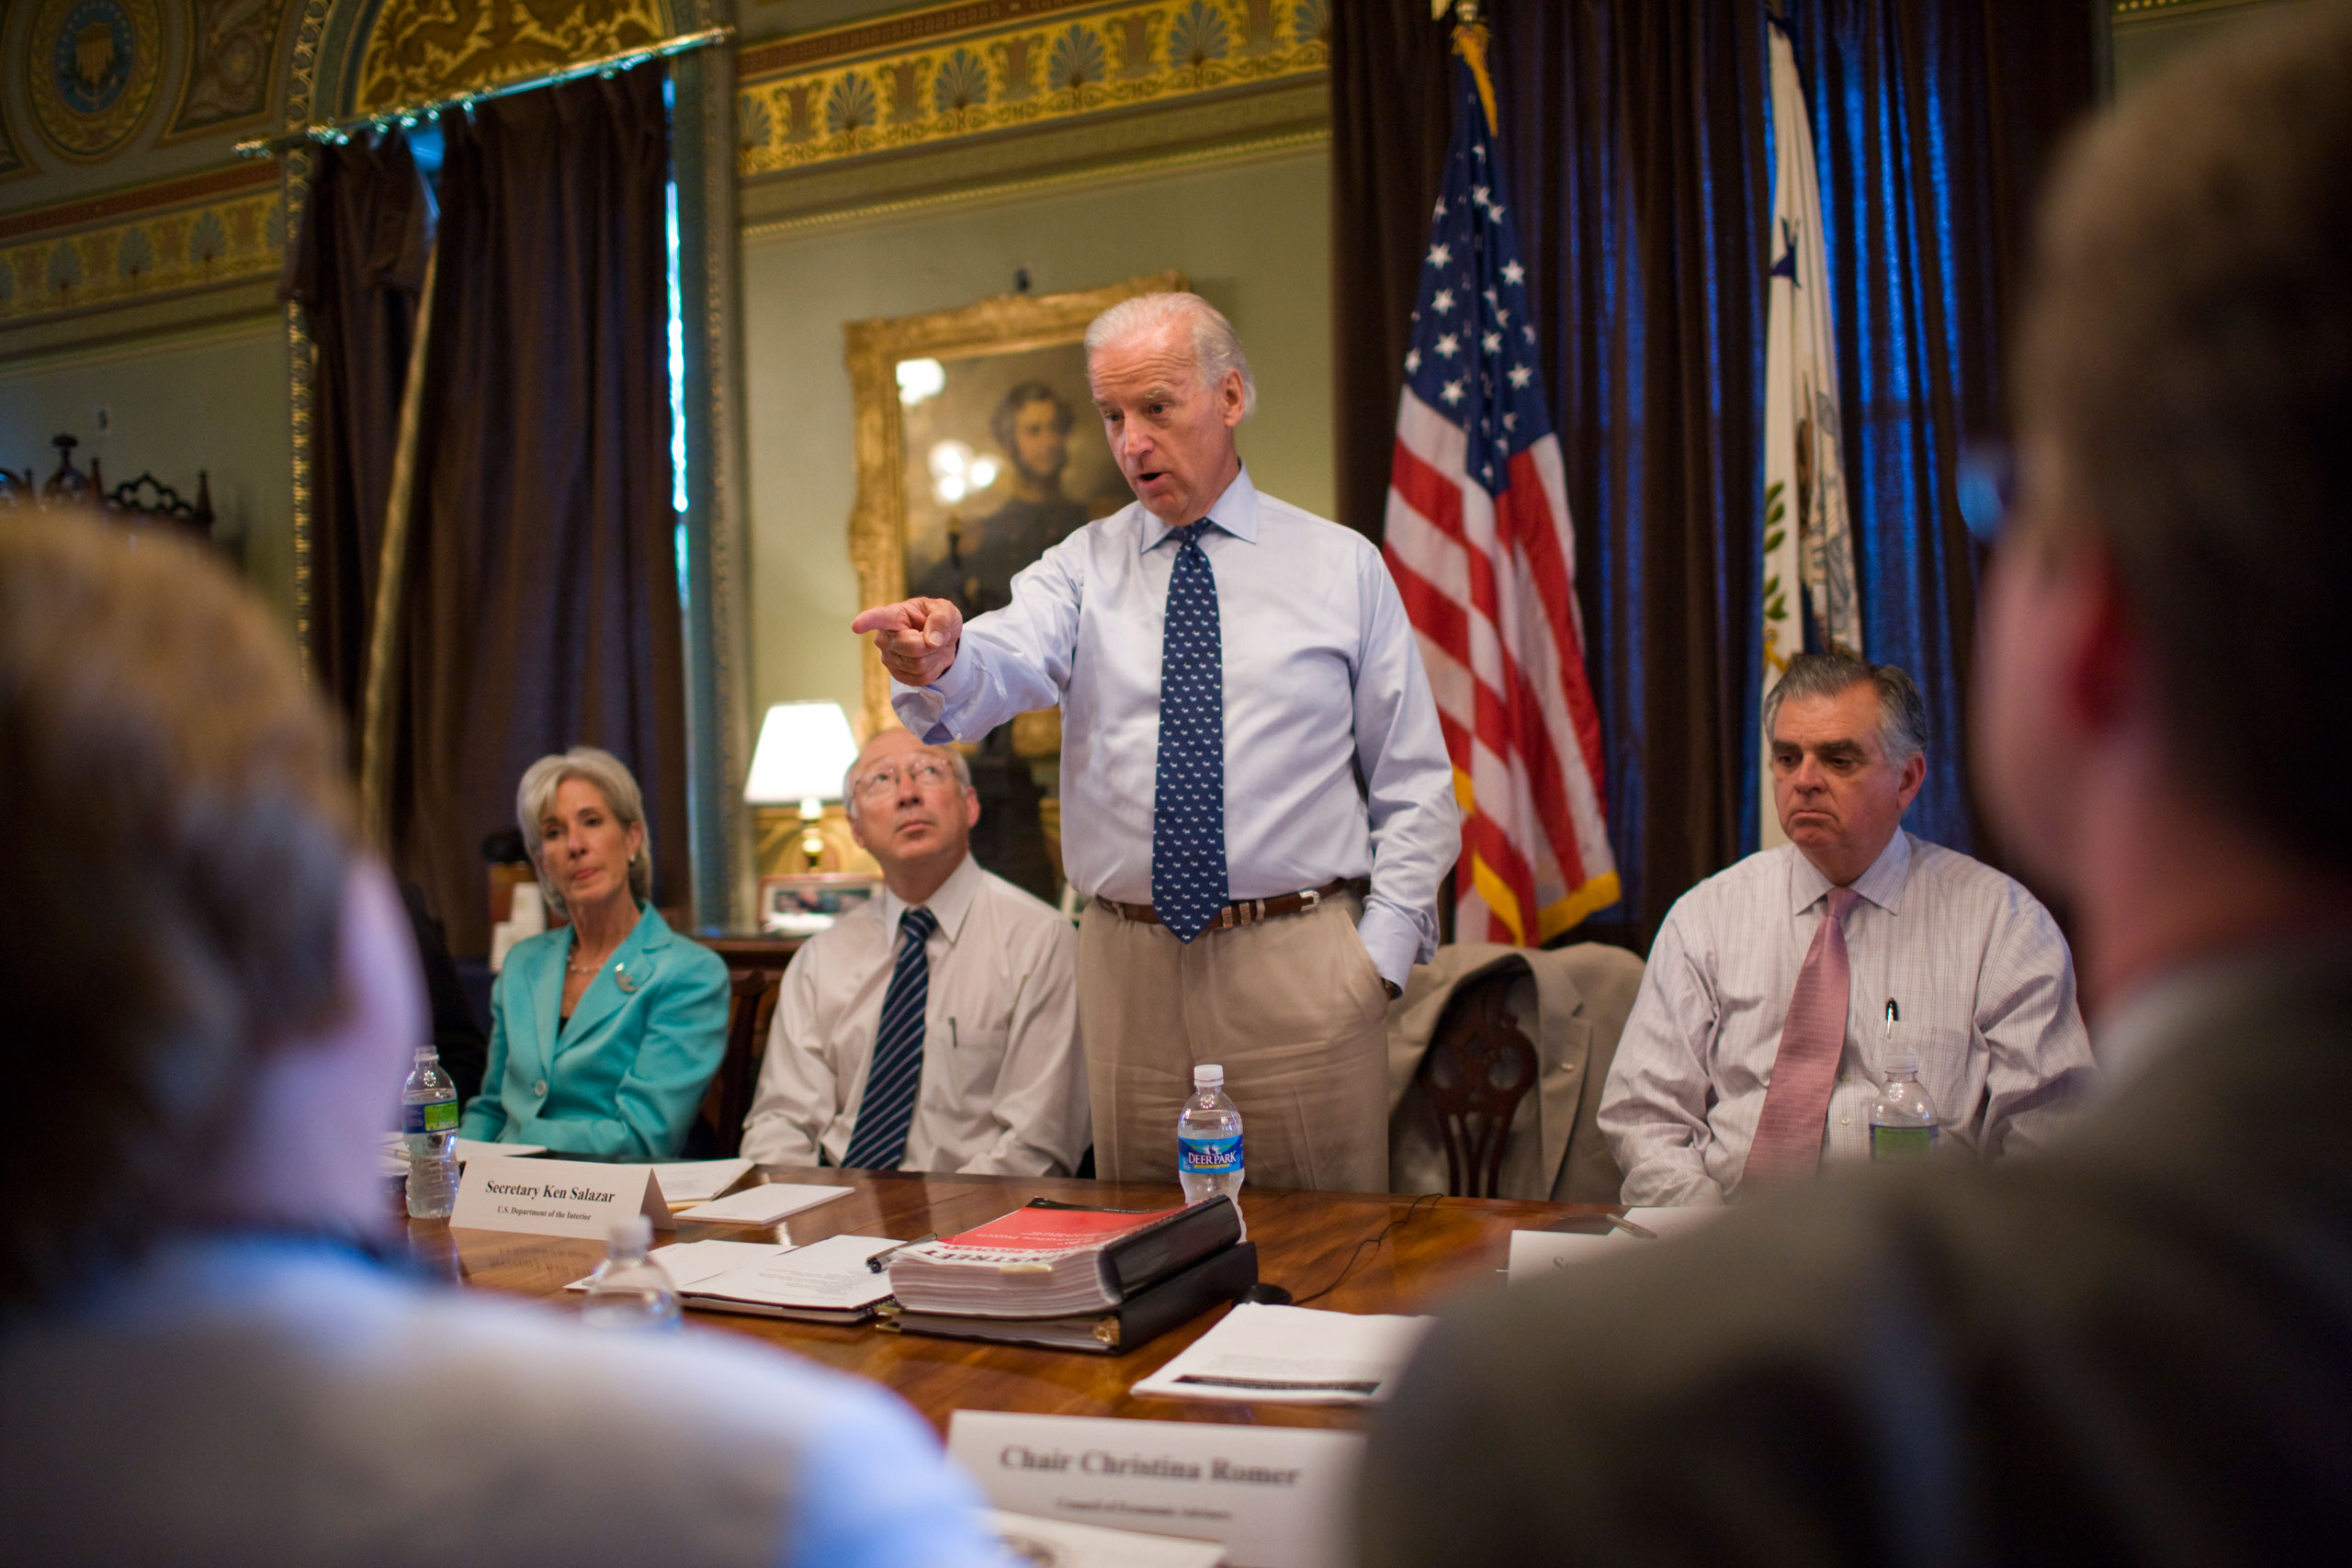 U.S. Vice President Joe Biden attends a Recovery Act Implementation Cabinet meeting in the Eisenhower Executive Office Building on the White House campus in Washington, on June 25, 2009.